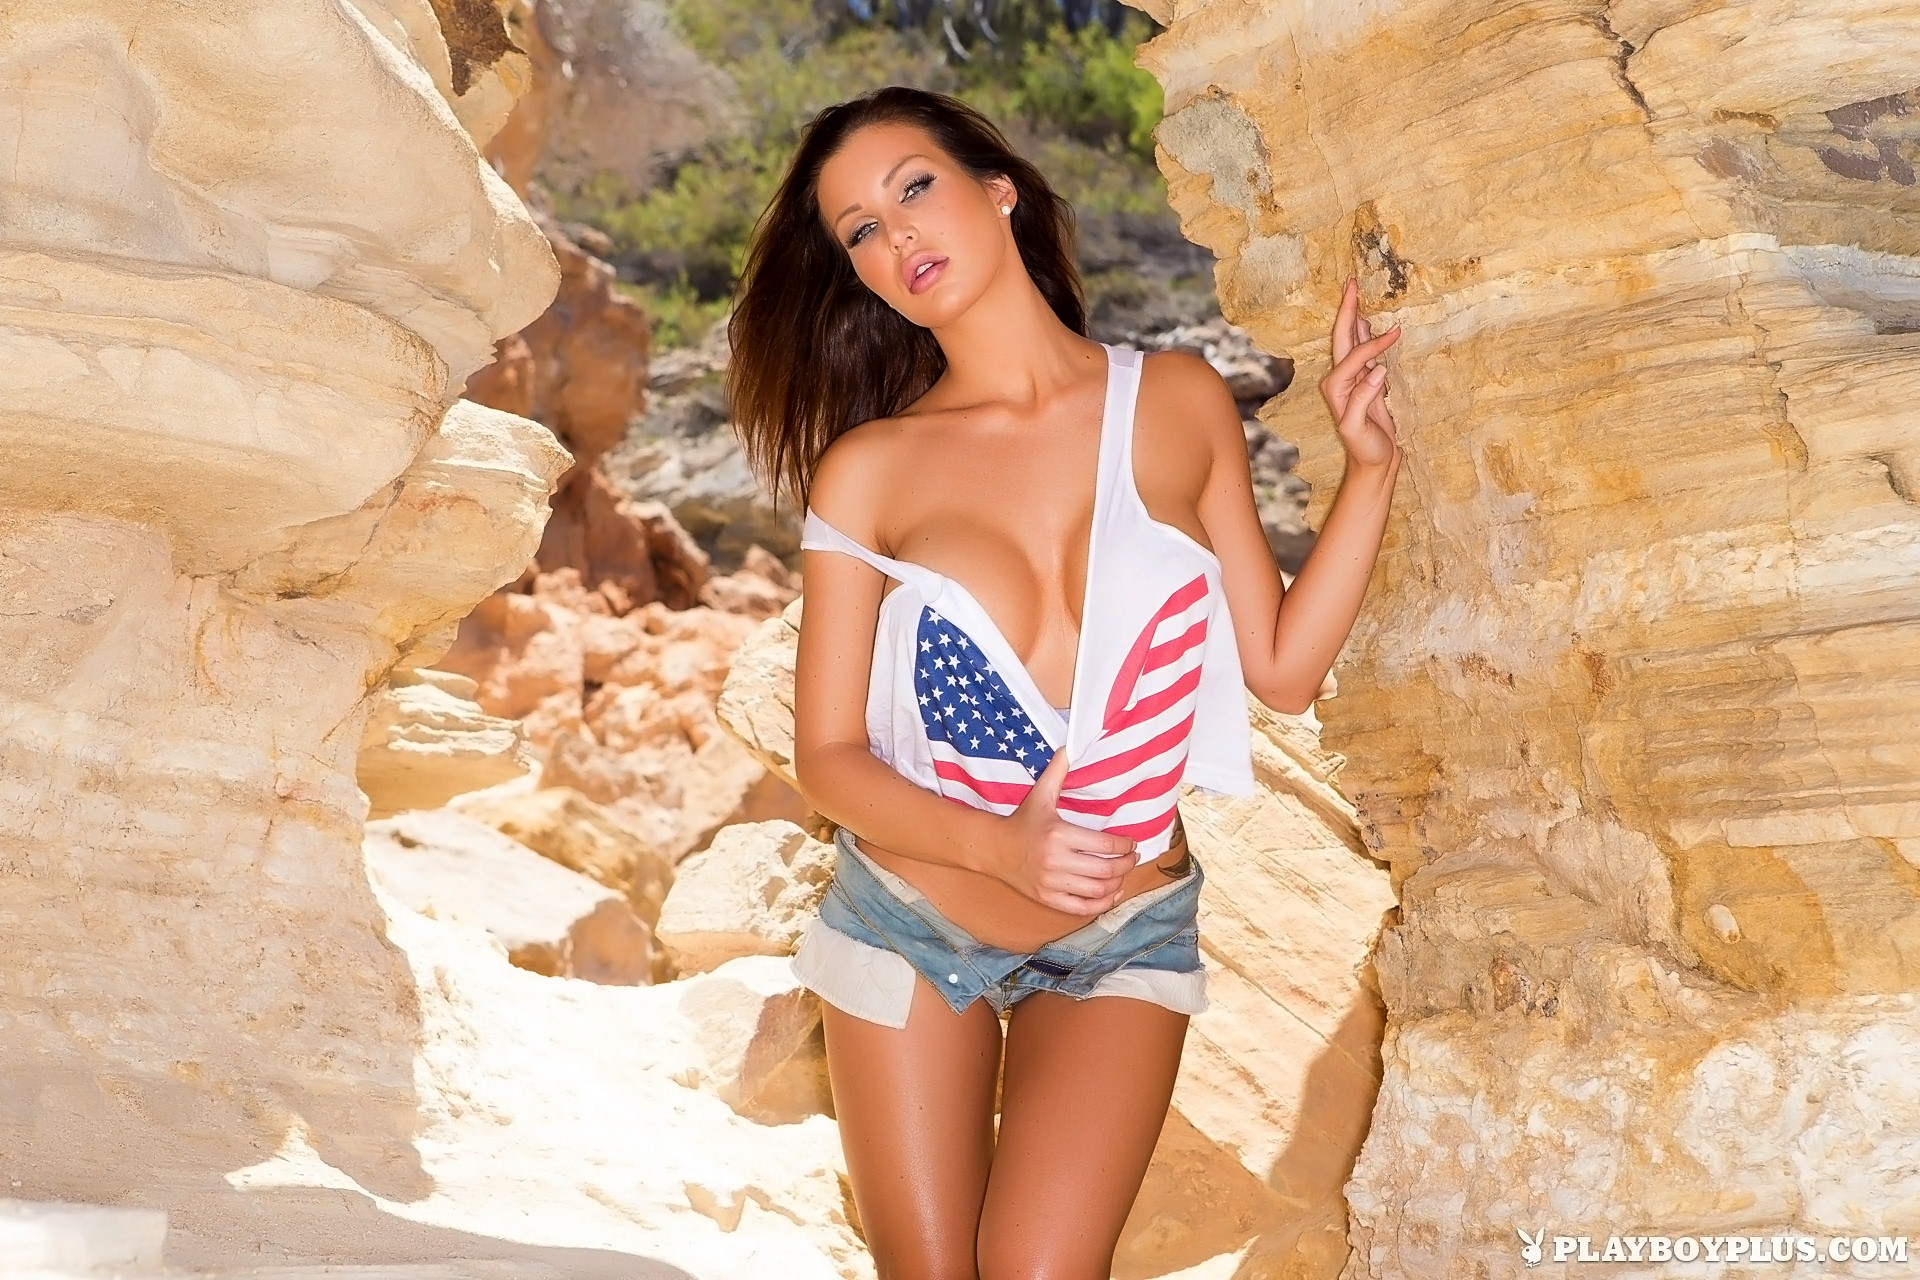 Helen de Muro in Red, White & Nude for Playboy | Daily Girls @ Female Update